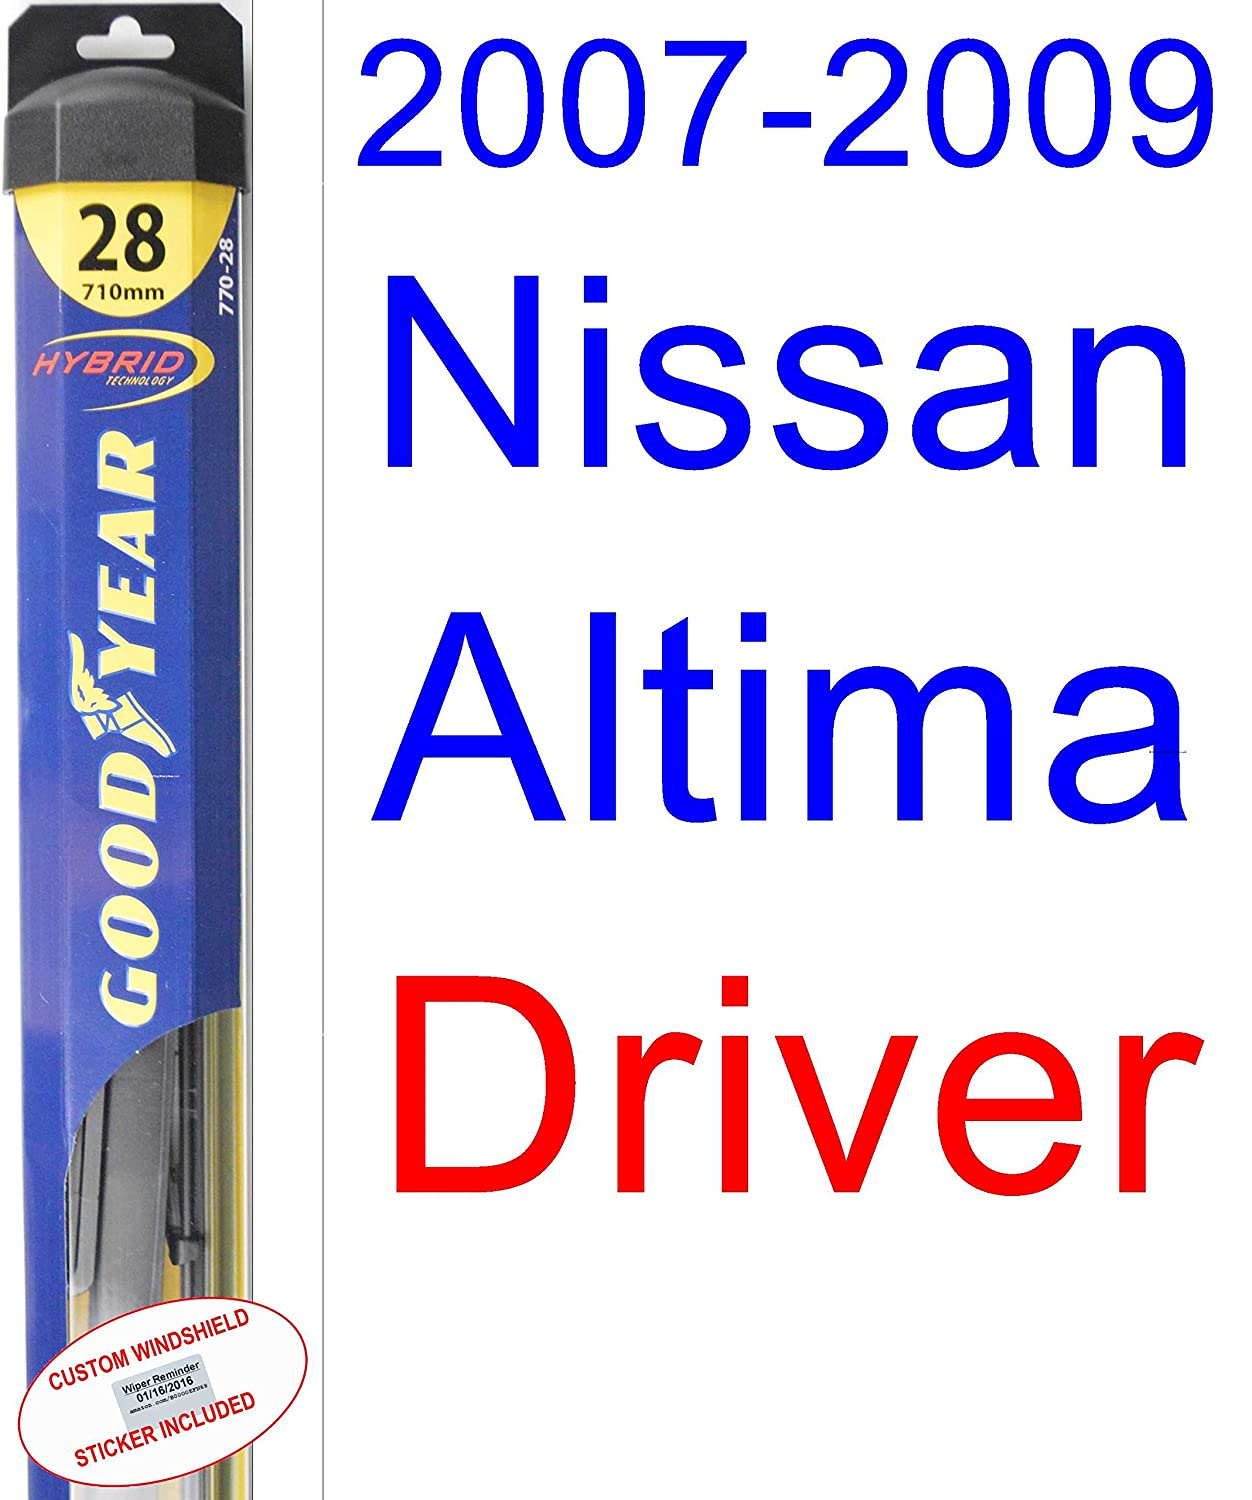 Amazon.com: 2007-2009 Nissan Altima Replacement Wiper Blade Set/Kit (Set of 2 Blades) (Goodyear Wiper Blades-Hybrid) (2008): Automotive